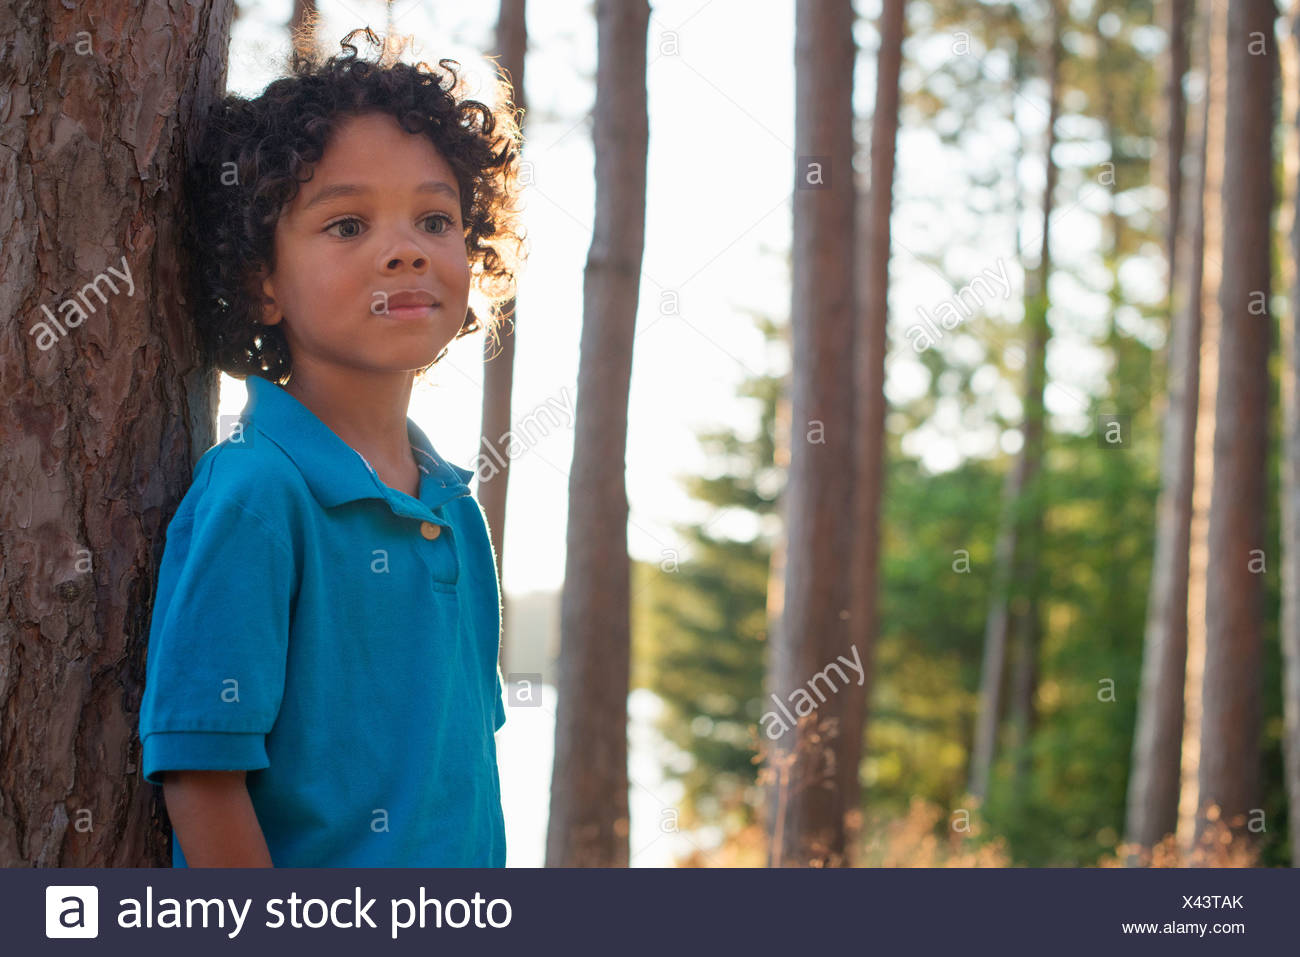 Trees on the shores of a lake. A child standing among the trees. - Stock Image